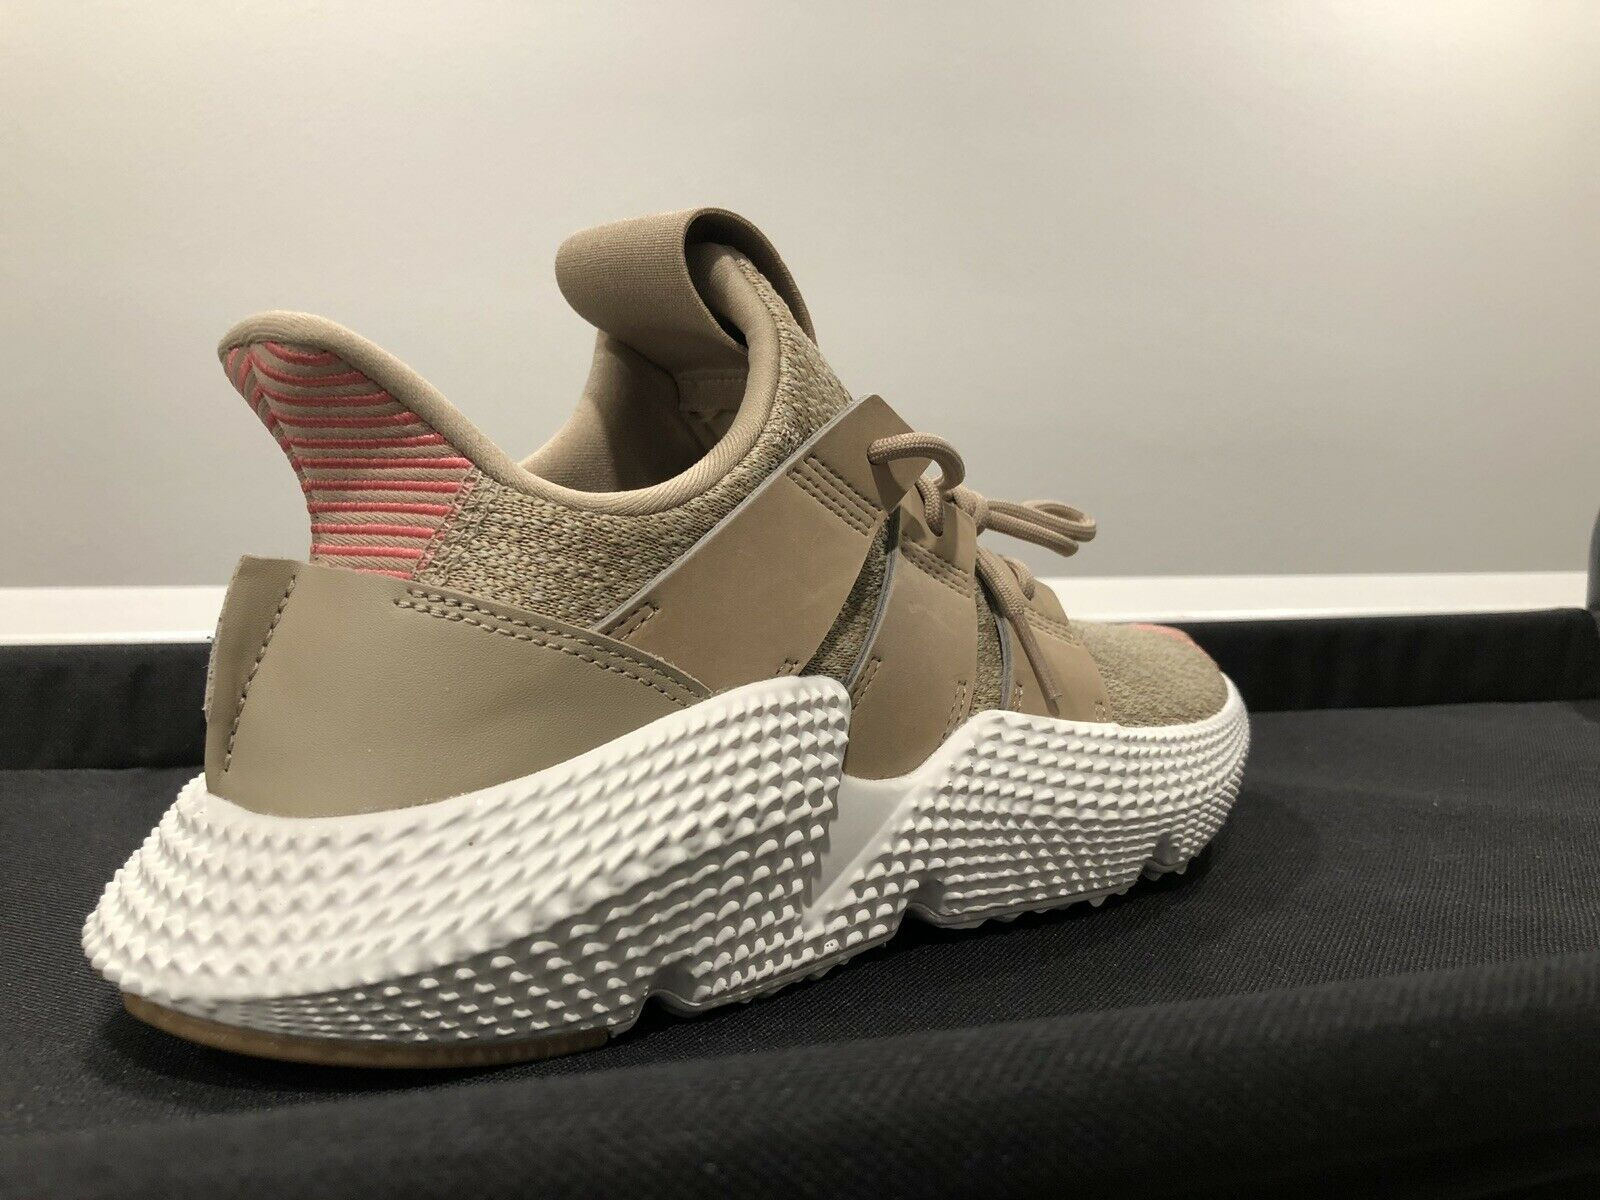 NEW Men's Adidas PROPHERE Sneakers Trace Khaki Chalk Pink CQ2128 Size 8 shoes